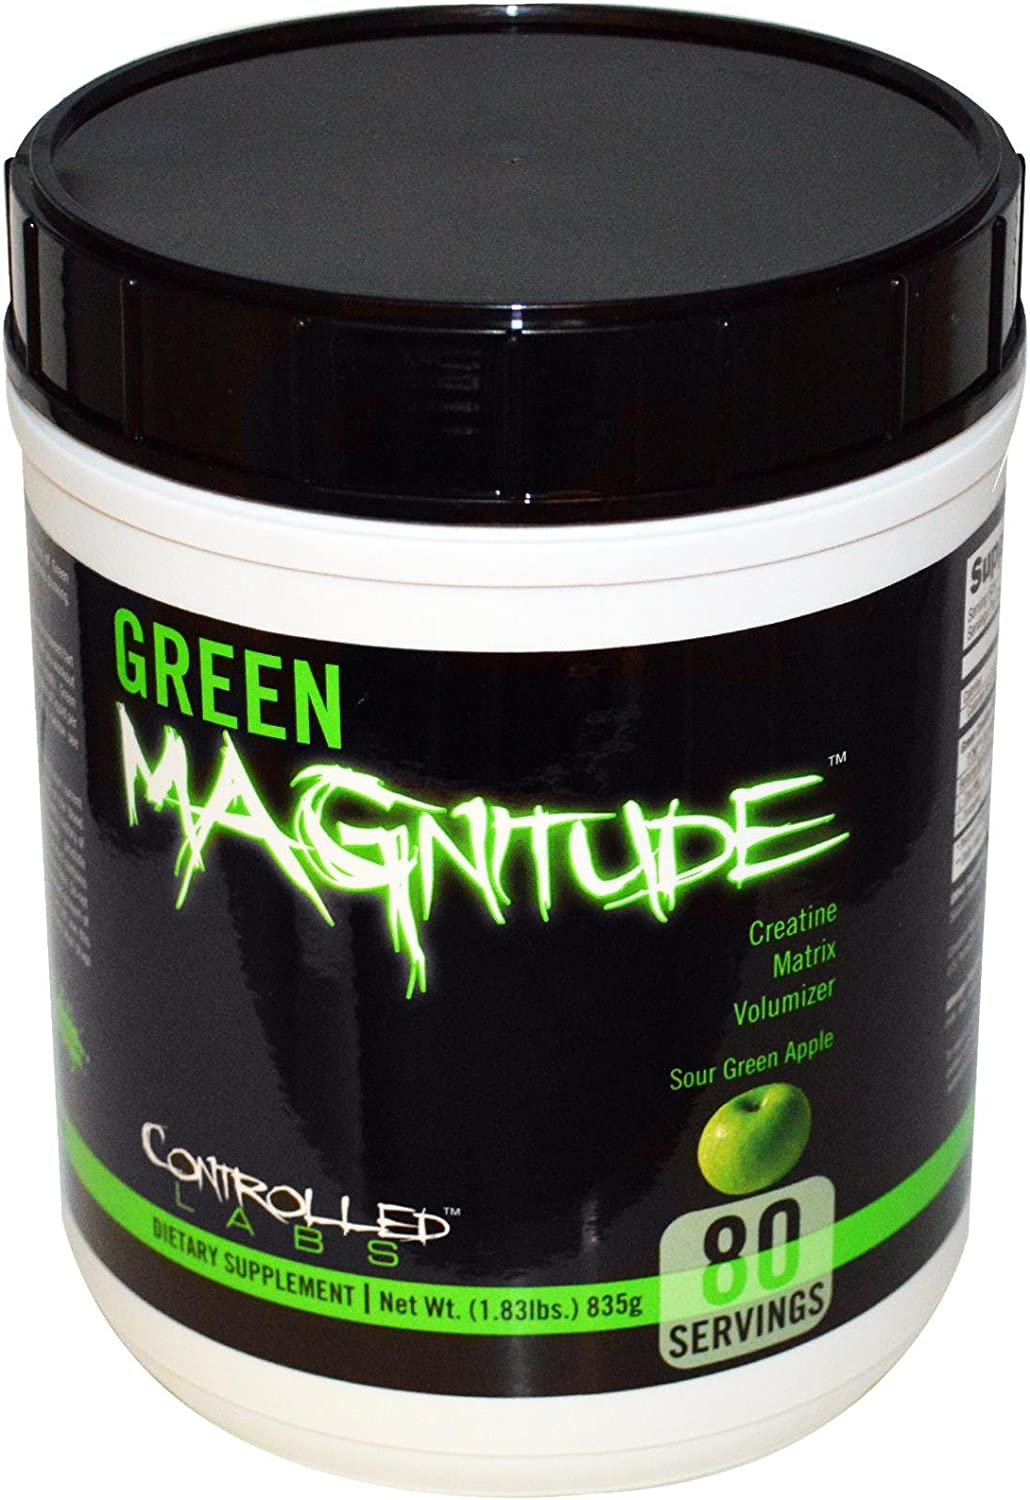 Controlled Popular product Labs At the price Green MAGnitude Sour 1.83 Flavor Apple lb